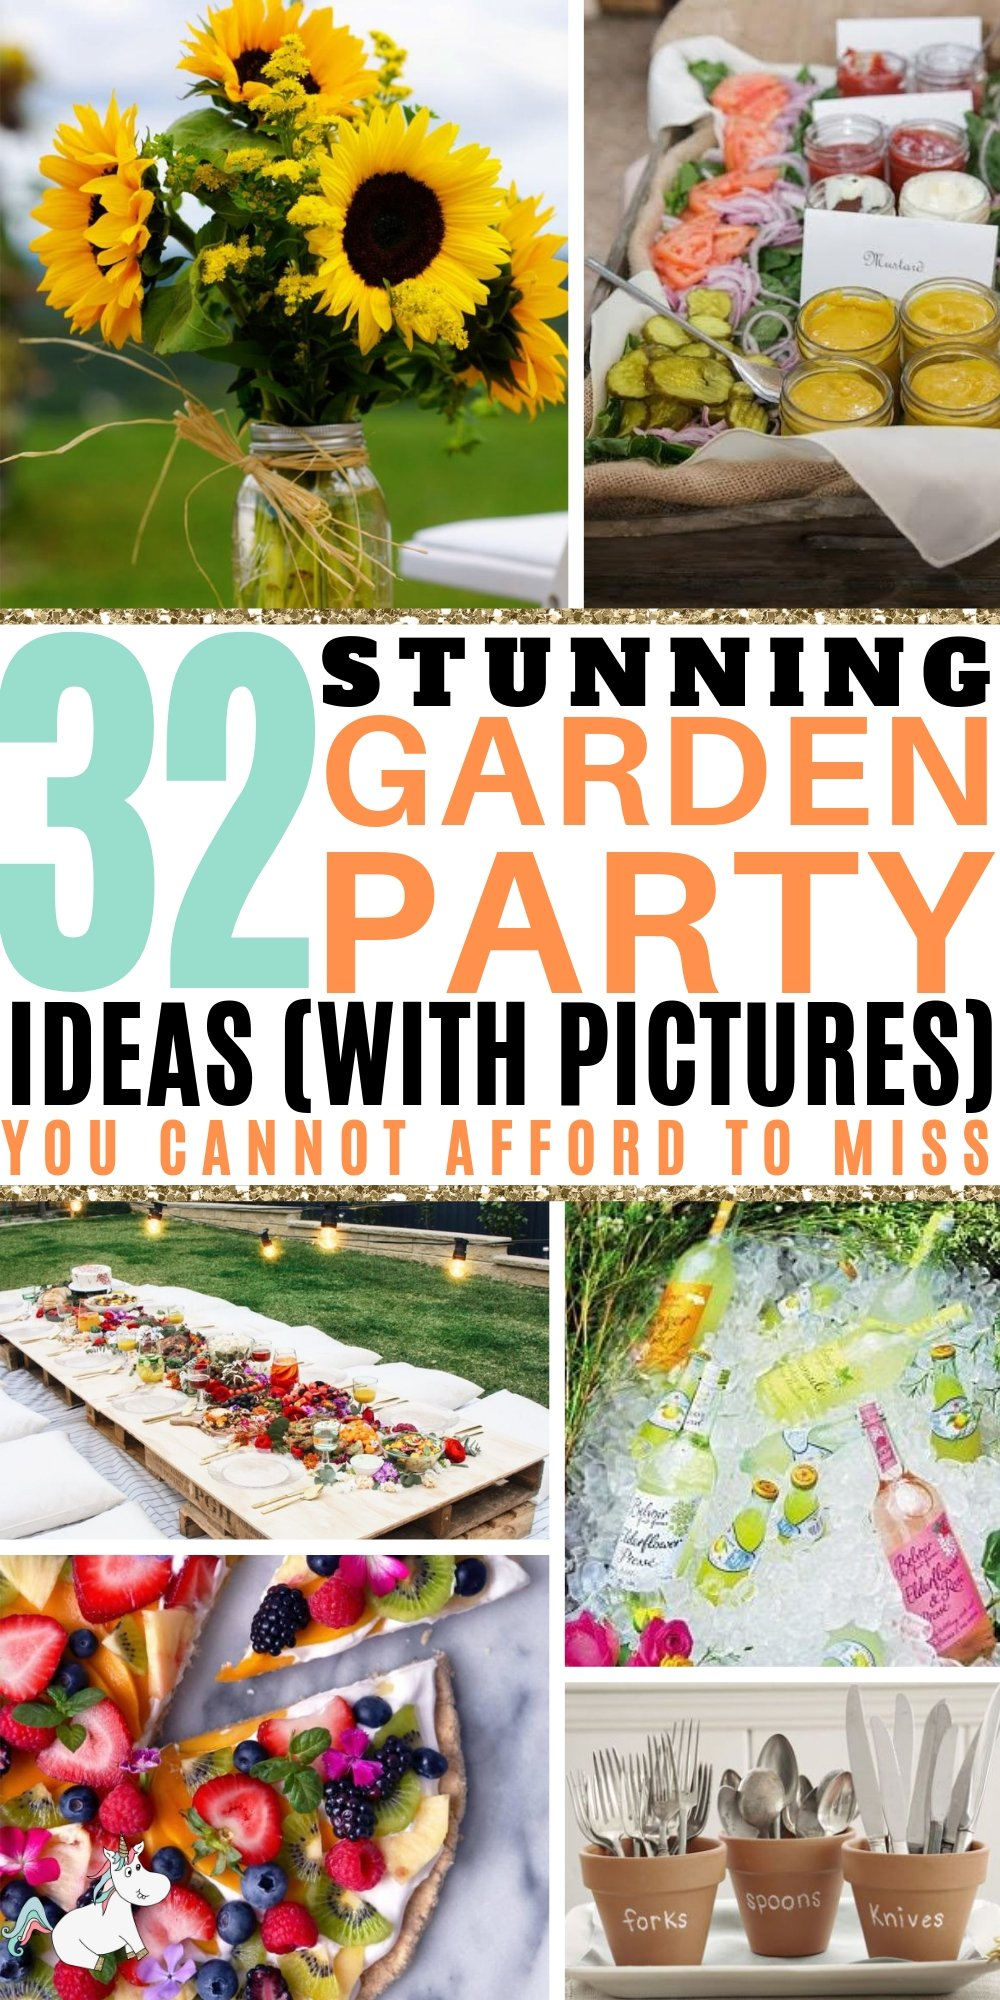 32 Best Garden Party Ideas With Pictures You Shouldnt